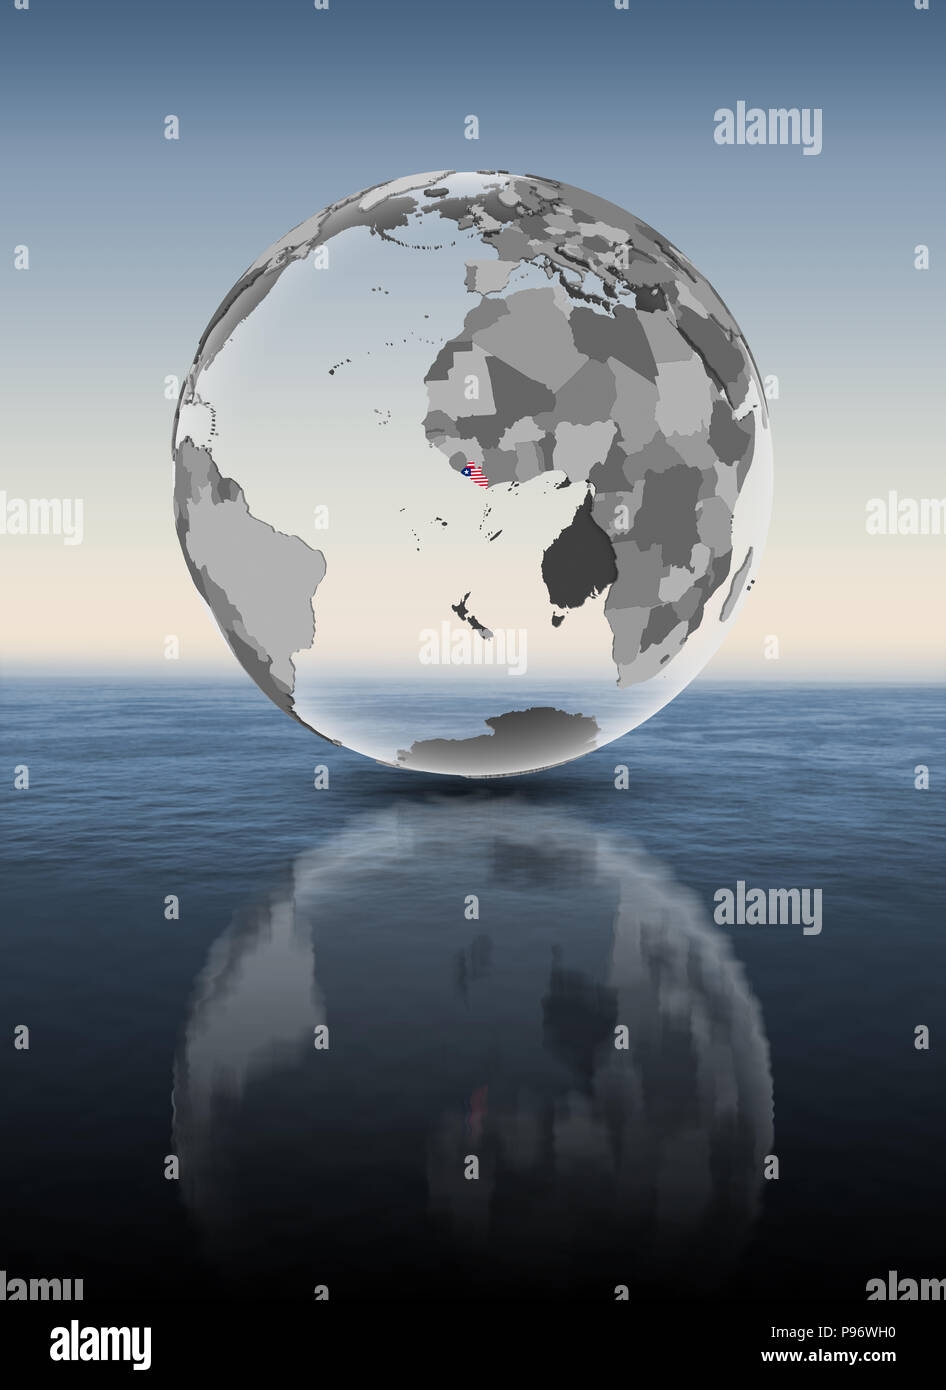 Liberia with flag on translucent globe above water. 3D illustration. - Stock Image